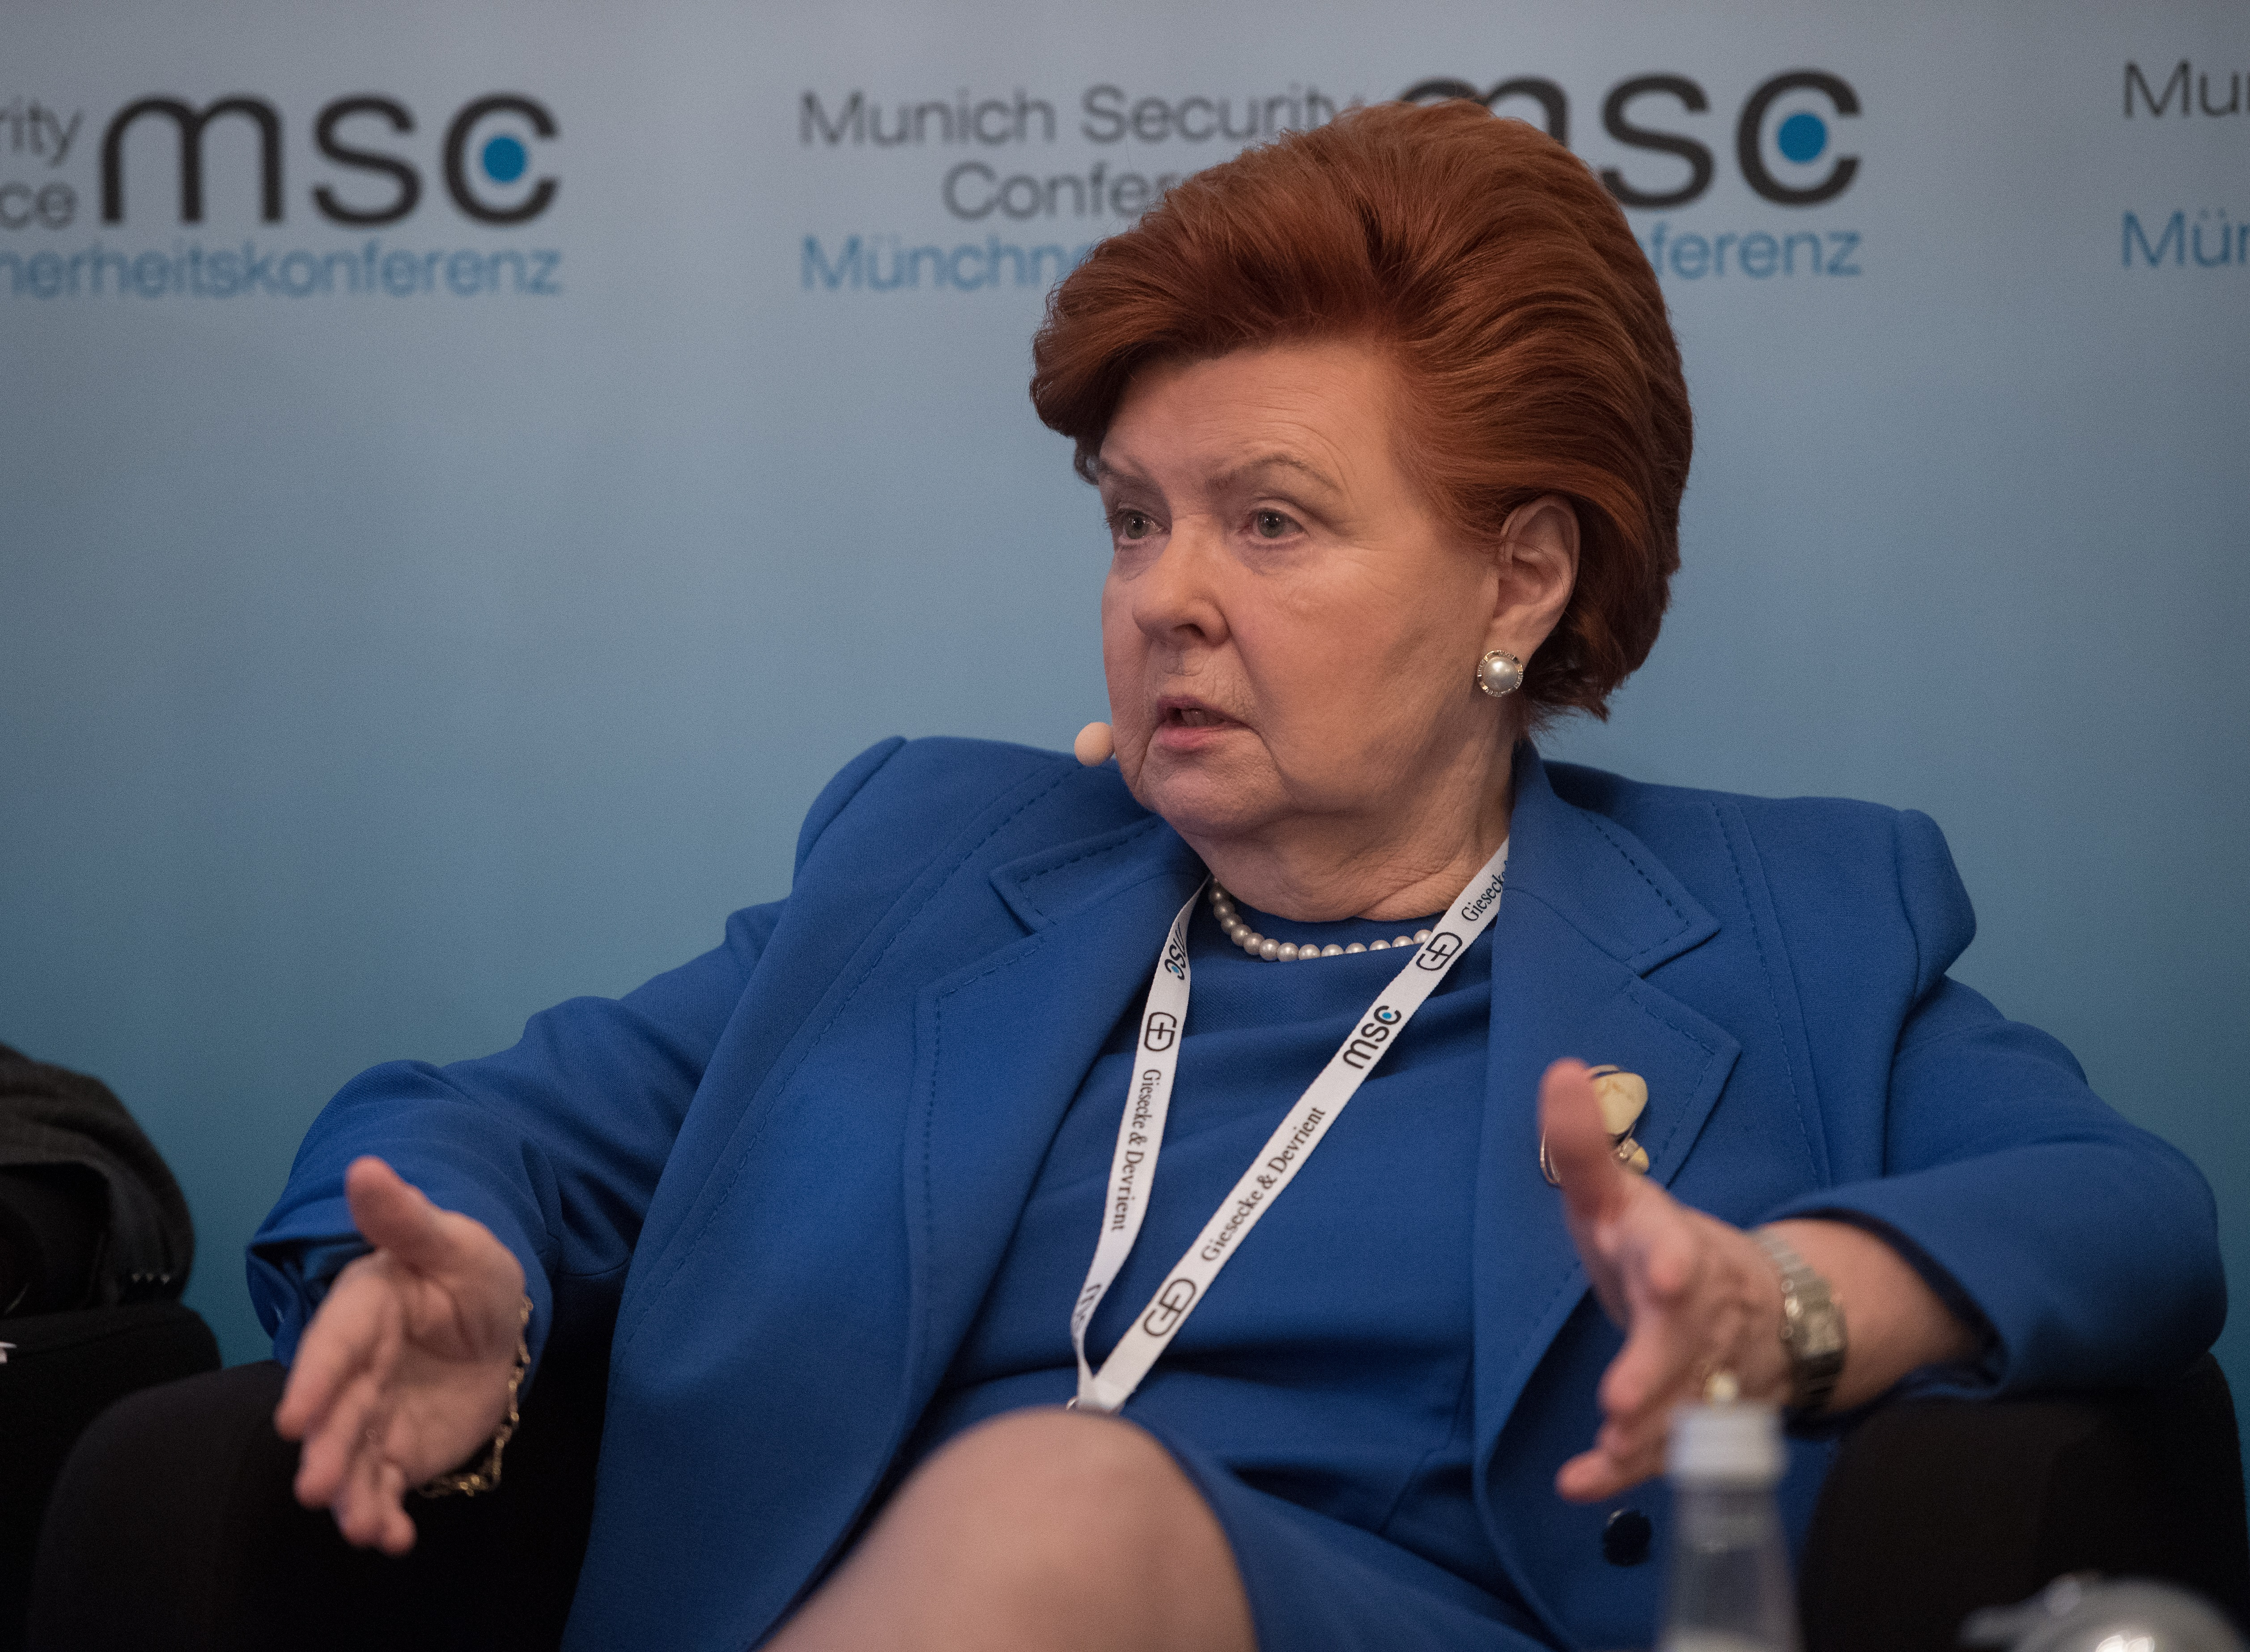 Munich Security Conference 2017